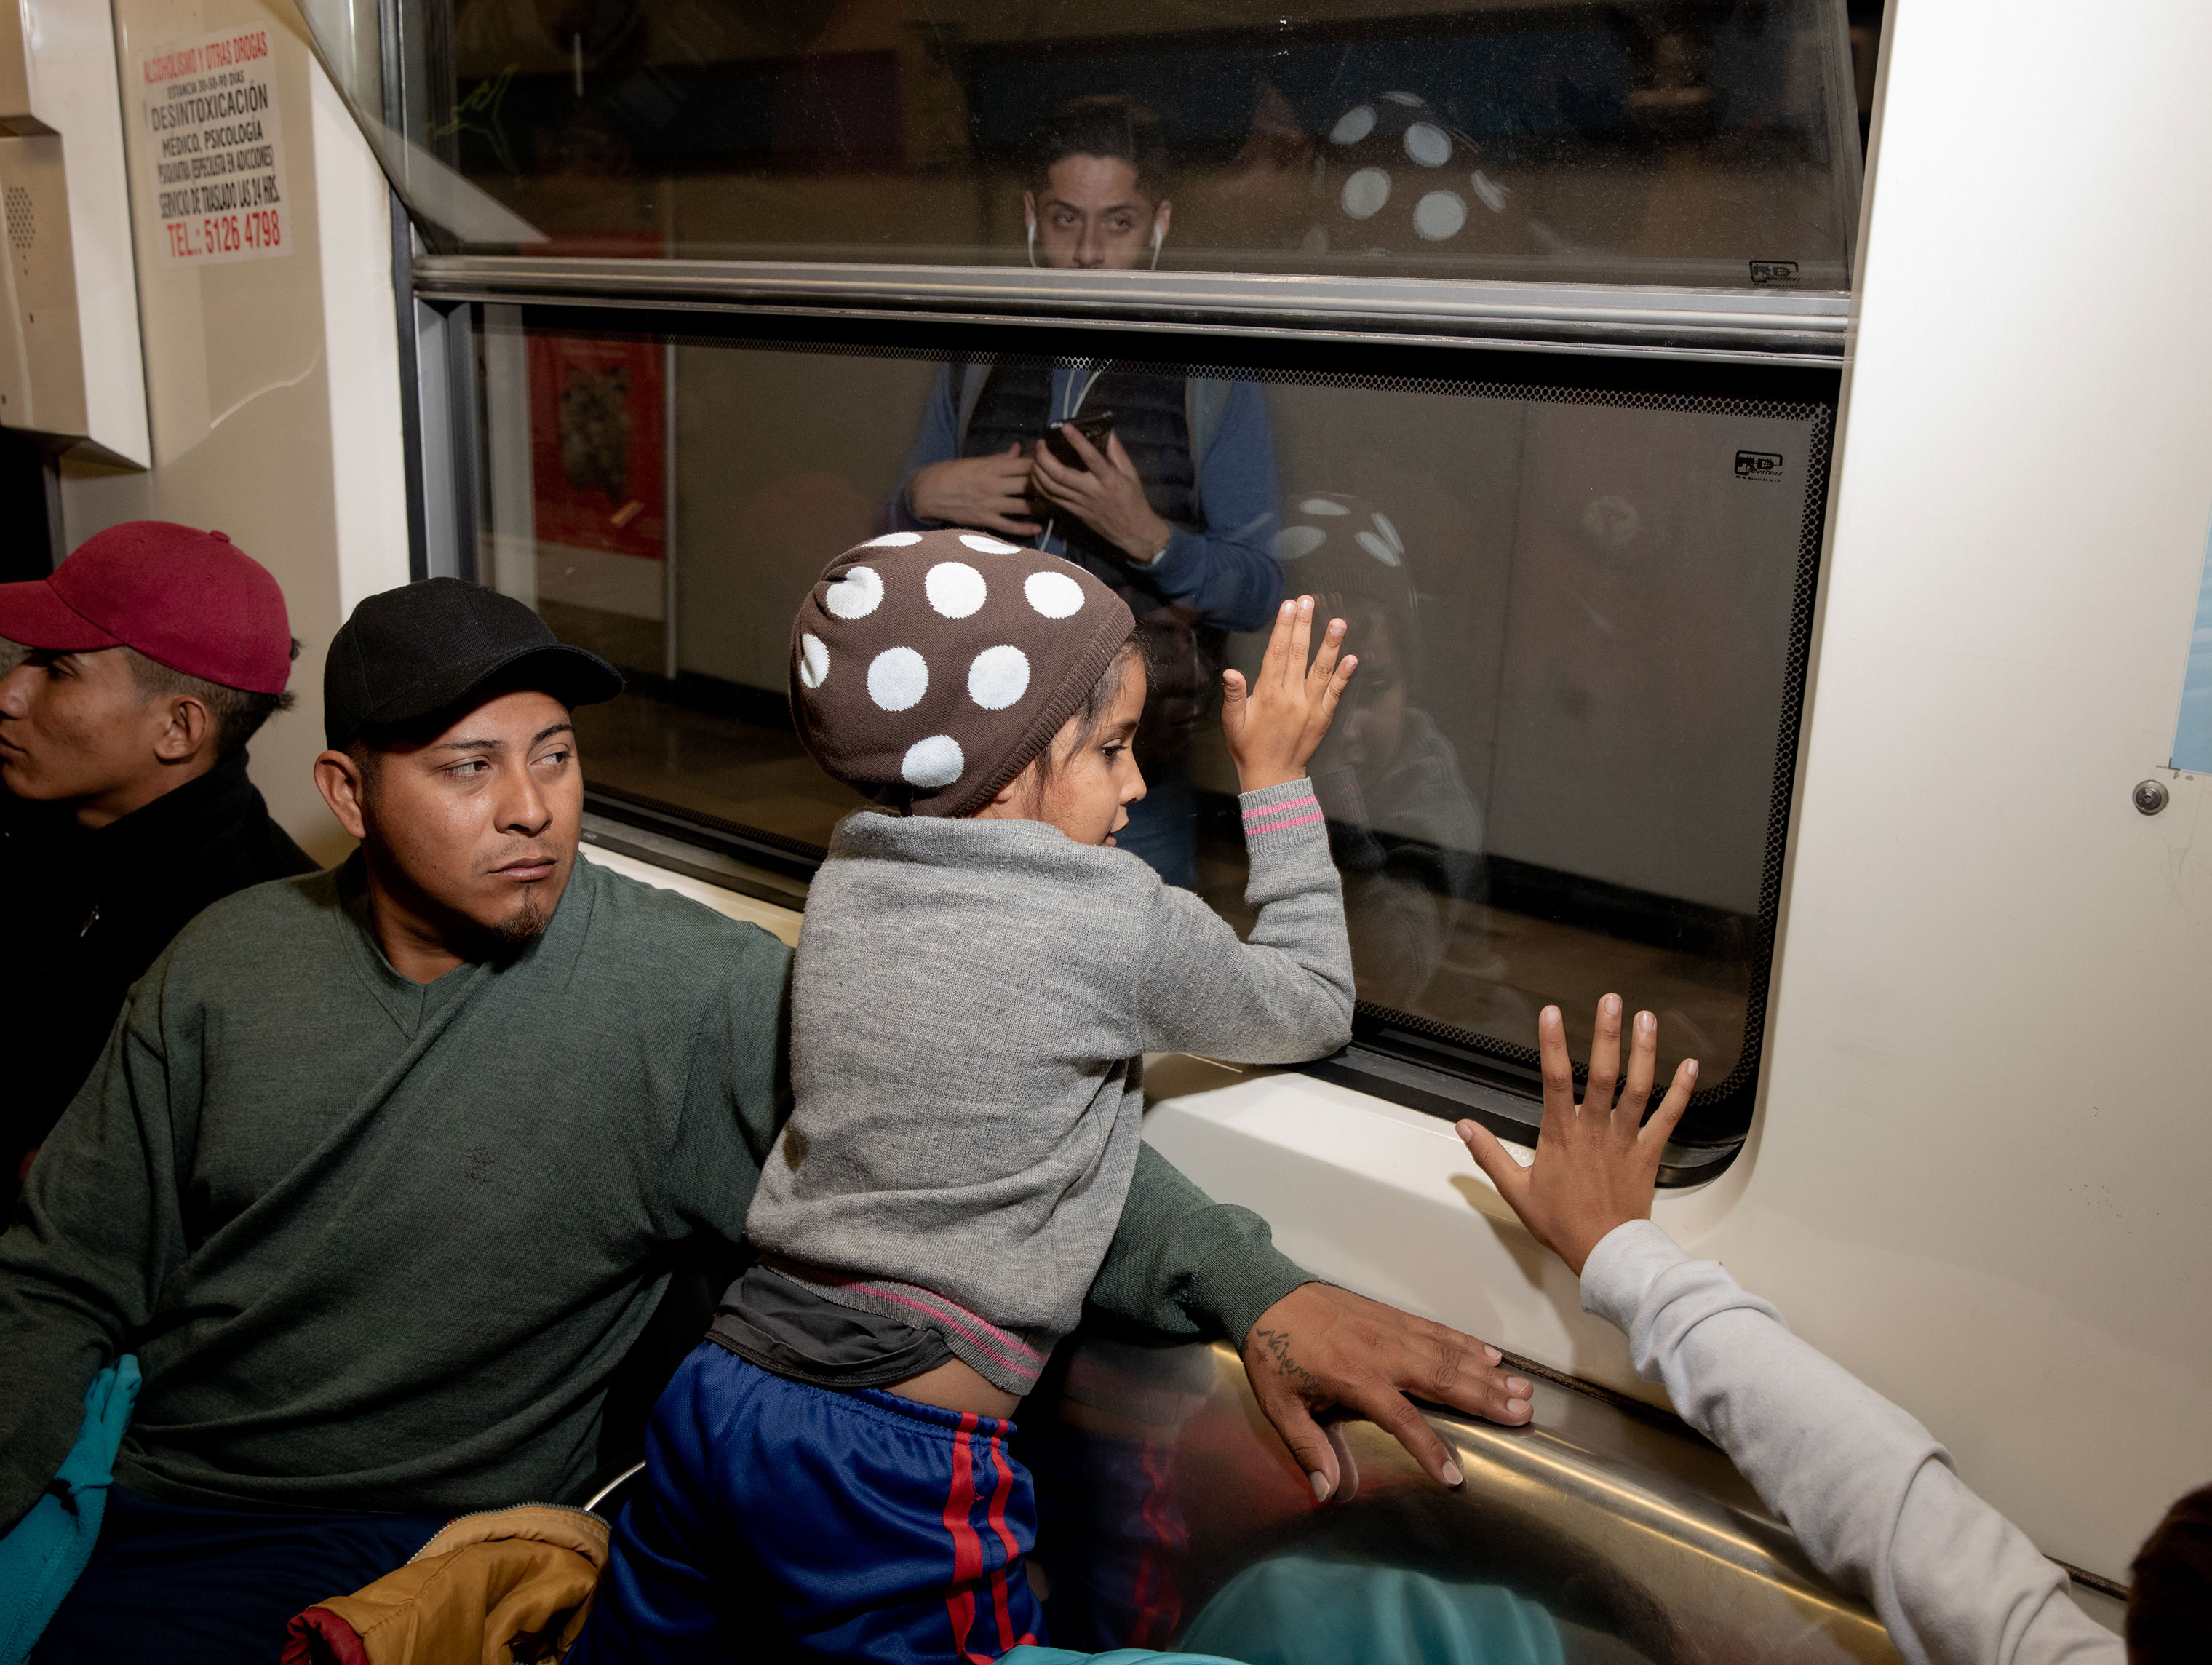 The migrant caravan exited Mexico City on the metro on the morning of Nov. 10, 2018. A young girl waves to a woman on the other side of the metro car.